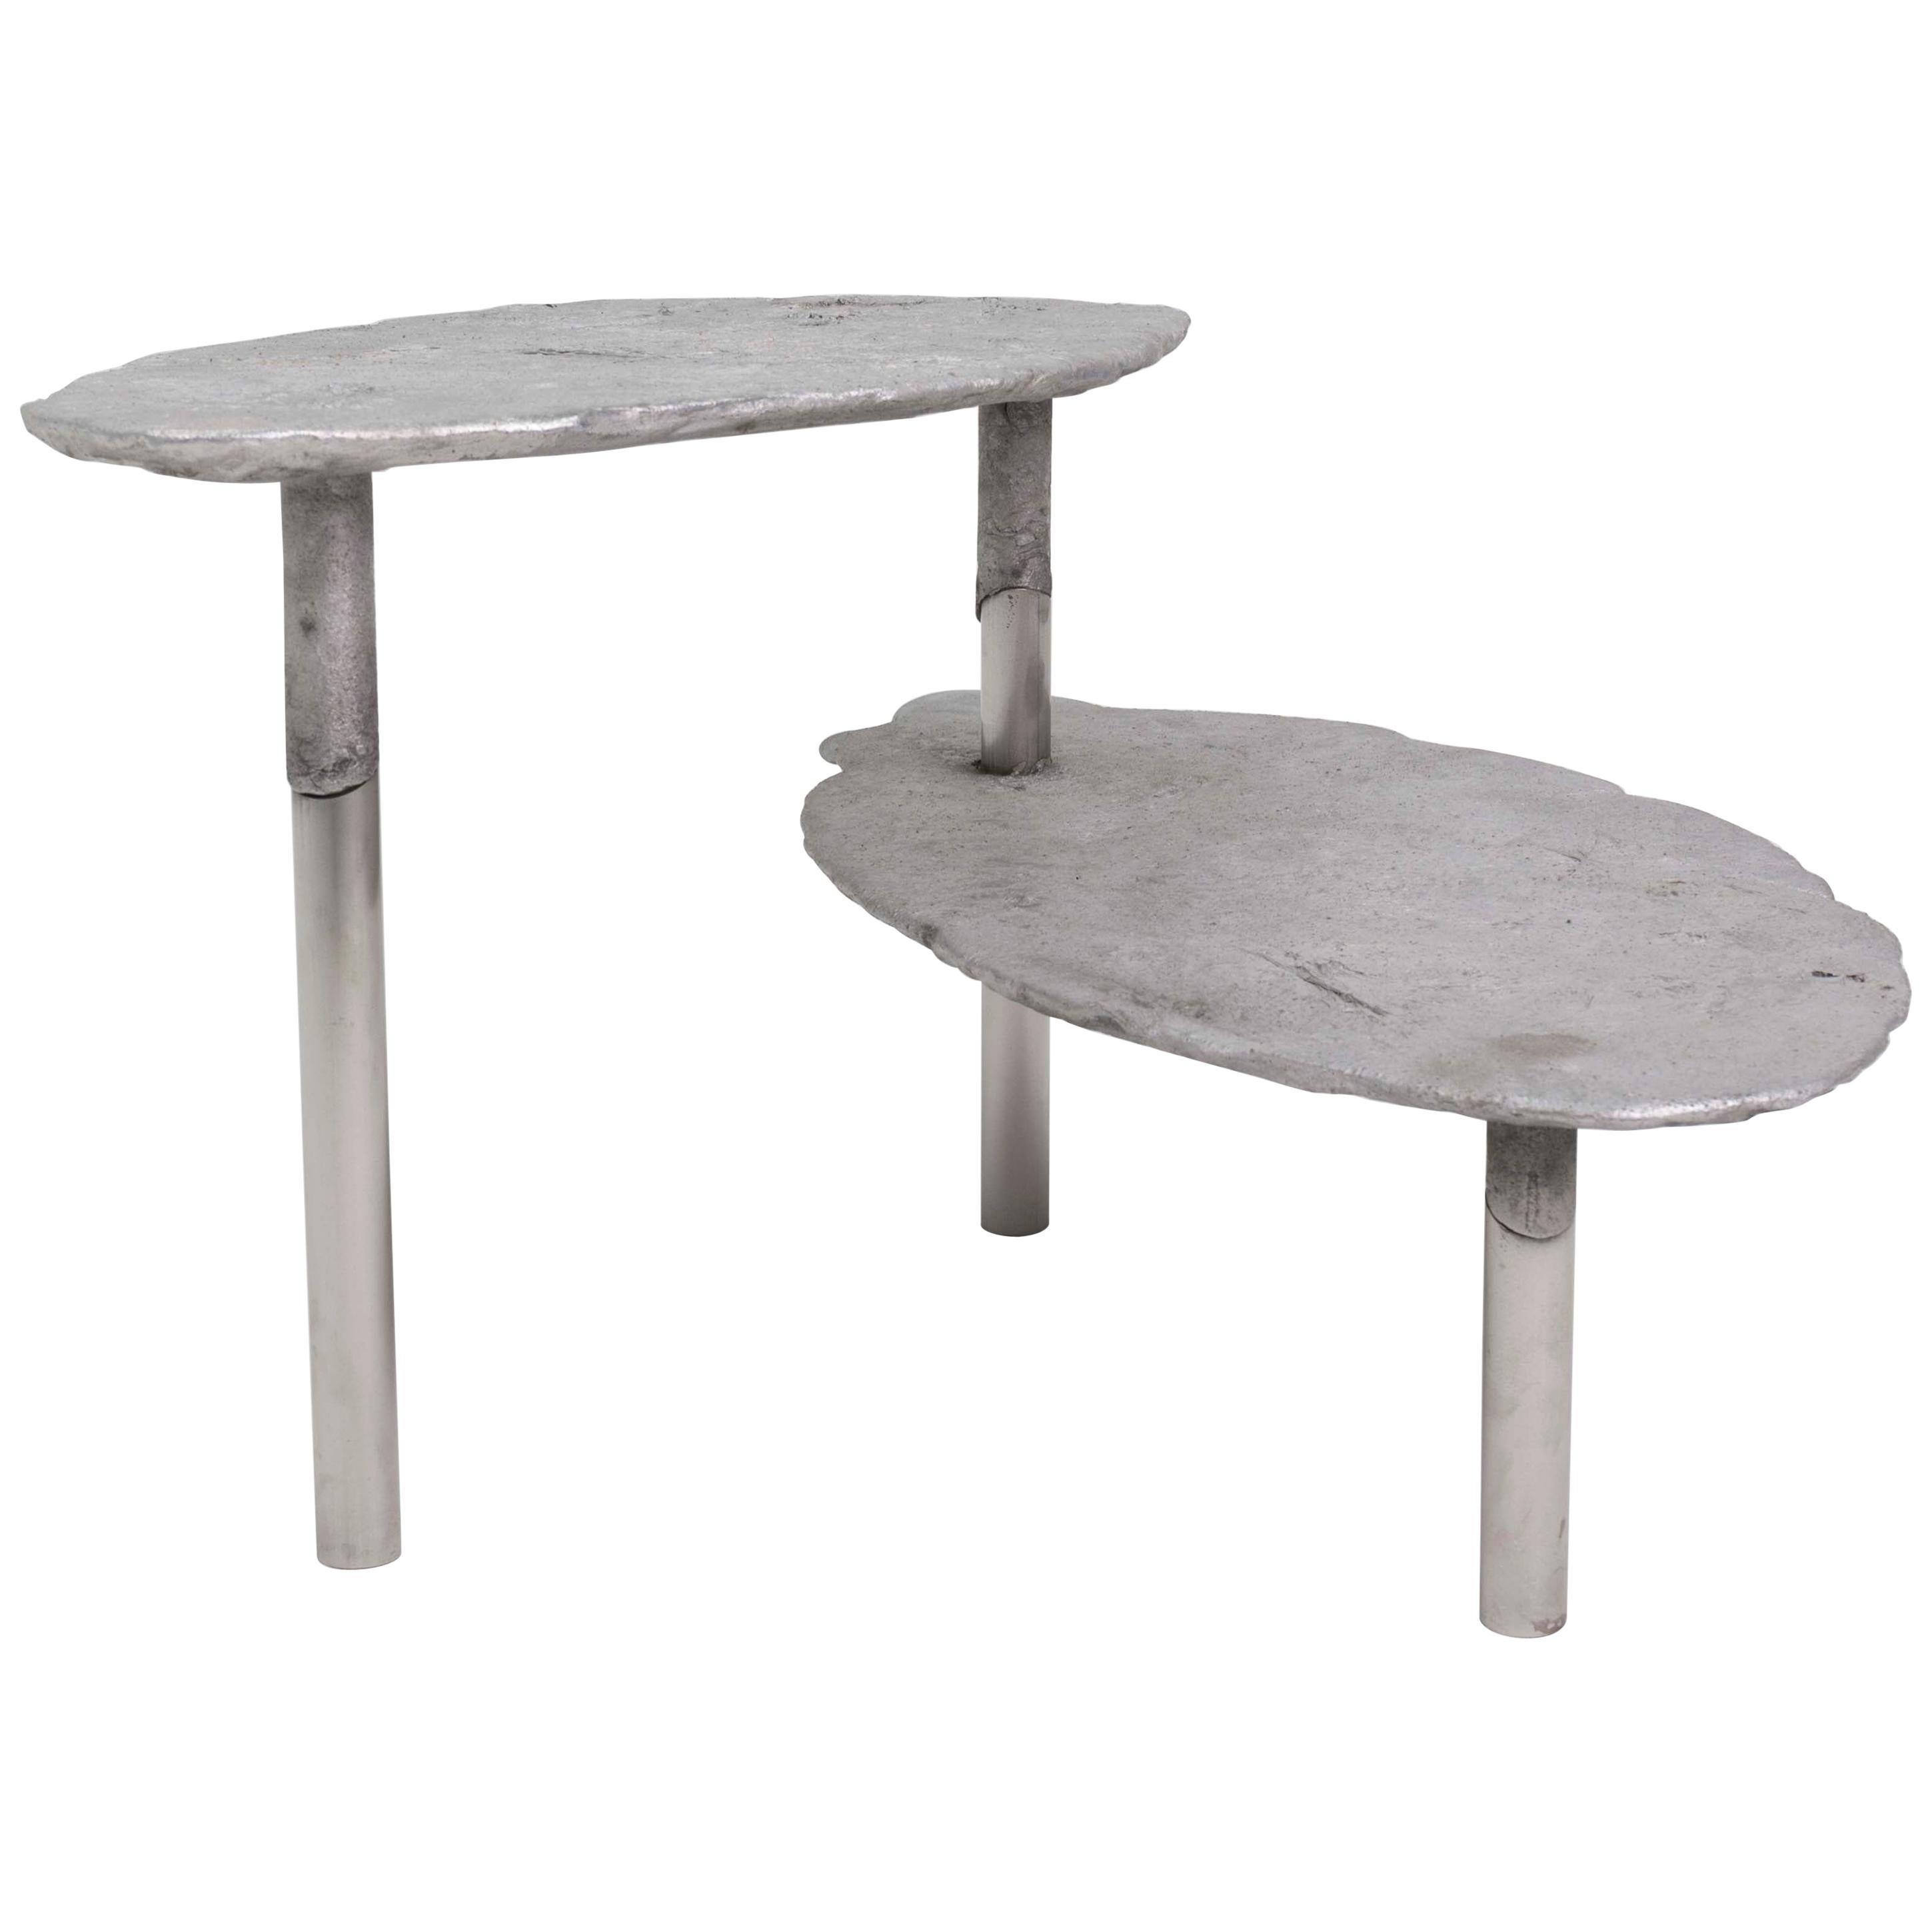 Aluminum Concretion Coffee Table by Studio Julien Manaira